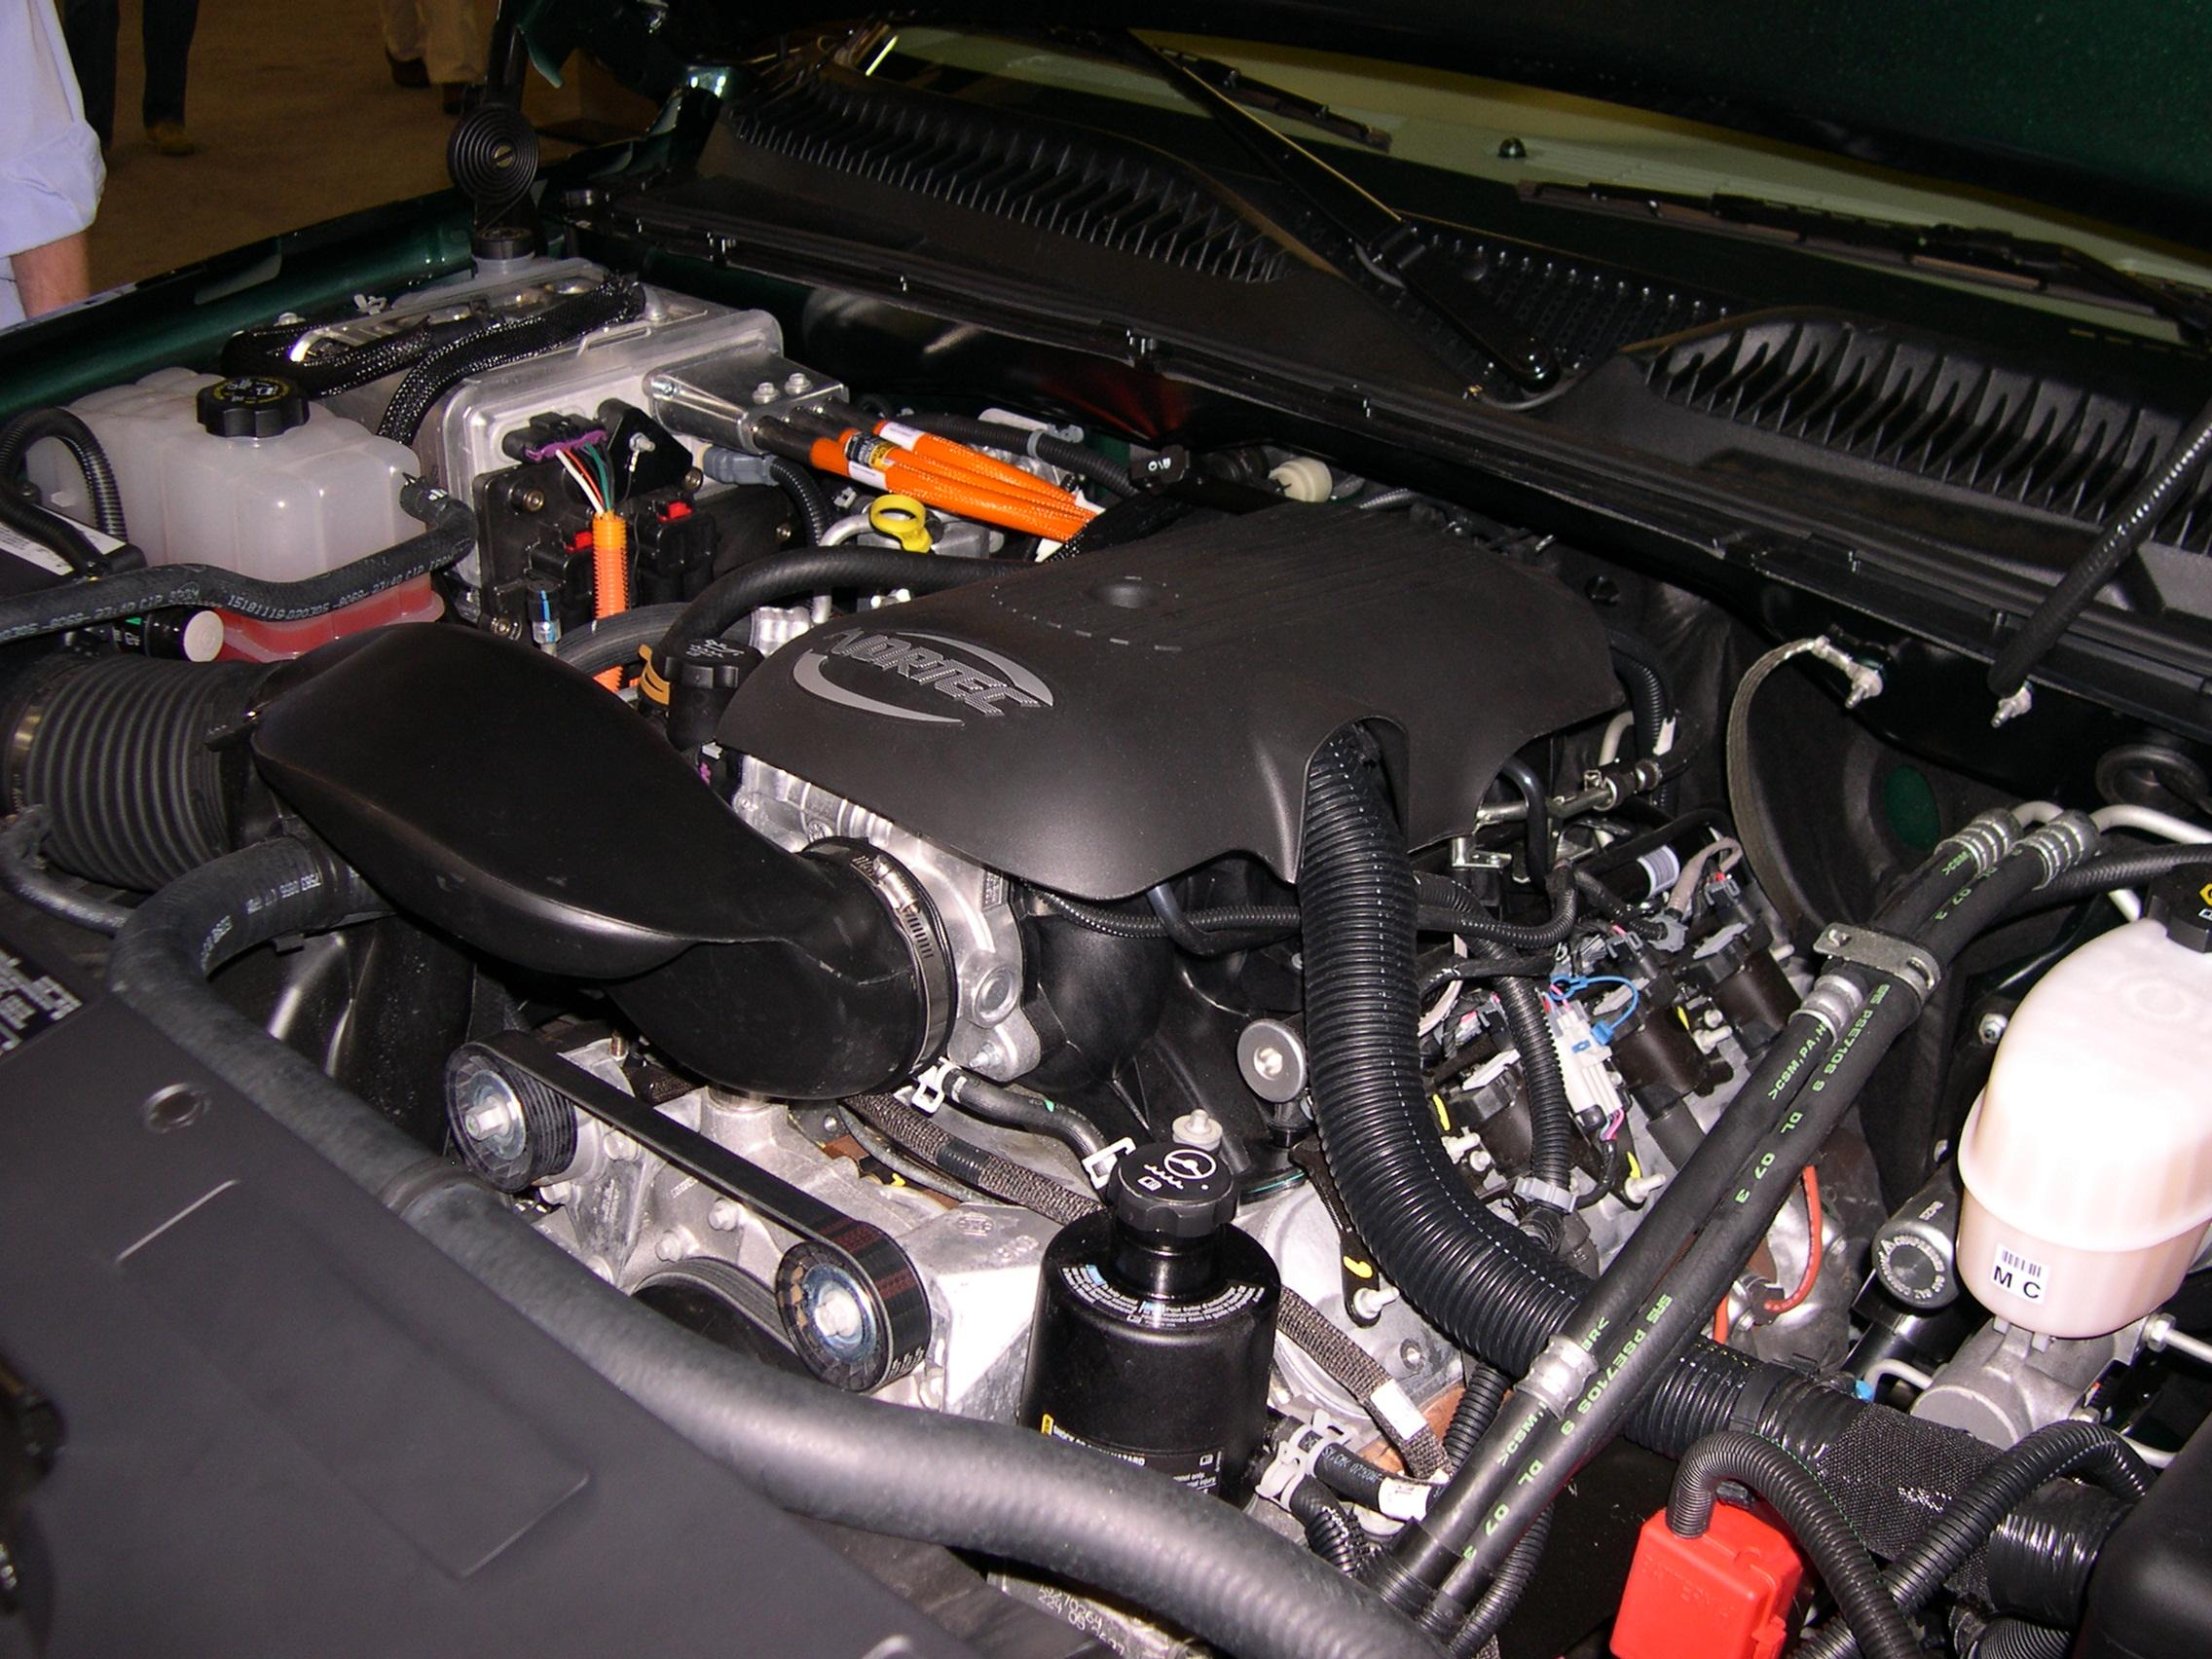 File:2006 GMC Sierra Hybrid engine.jpg